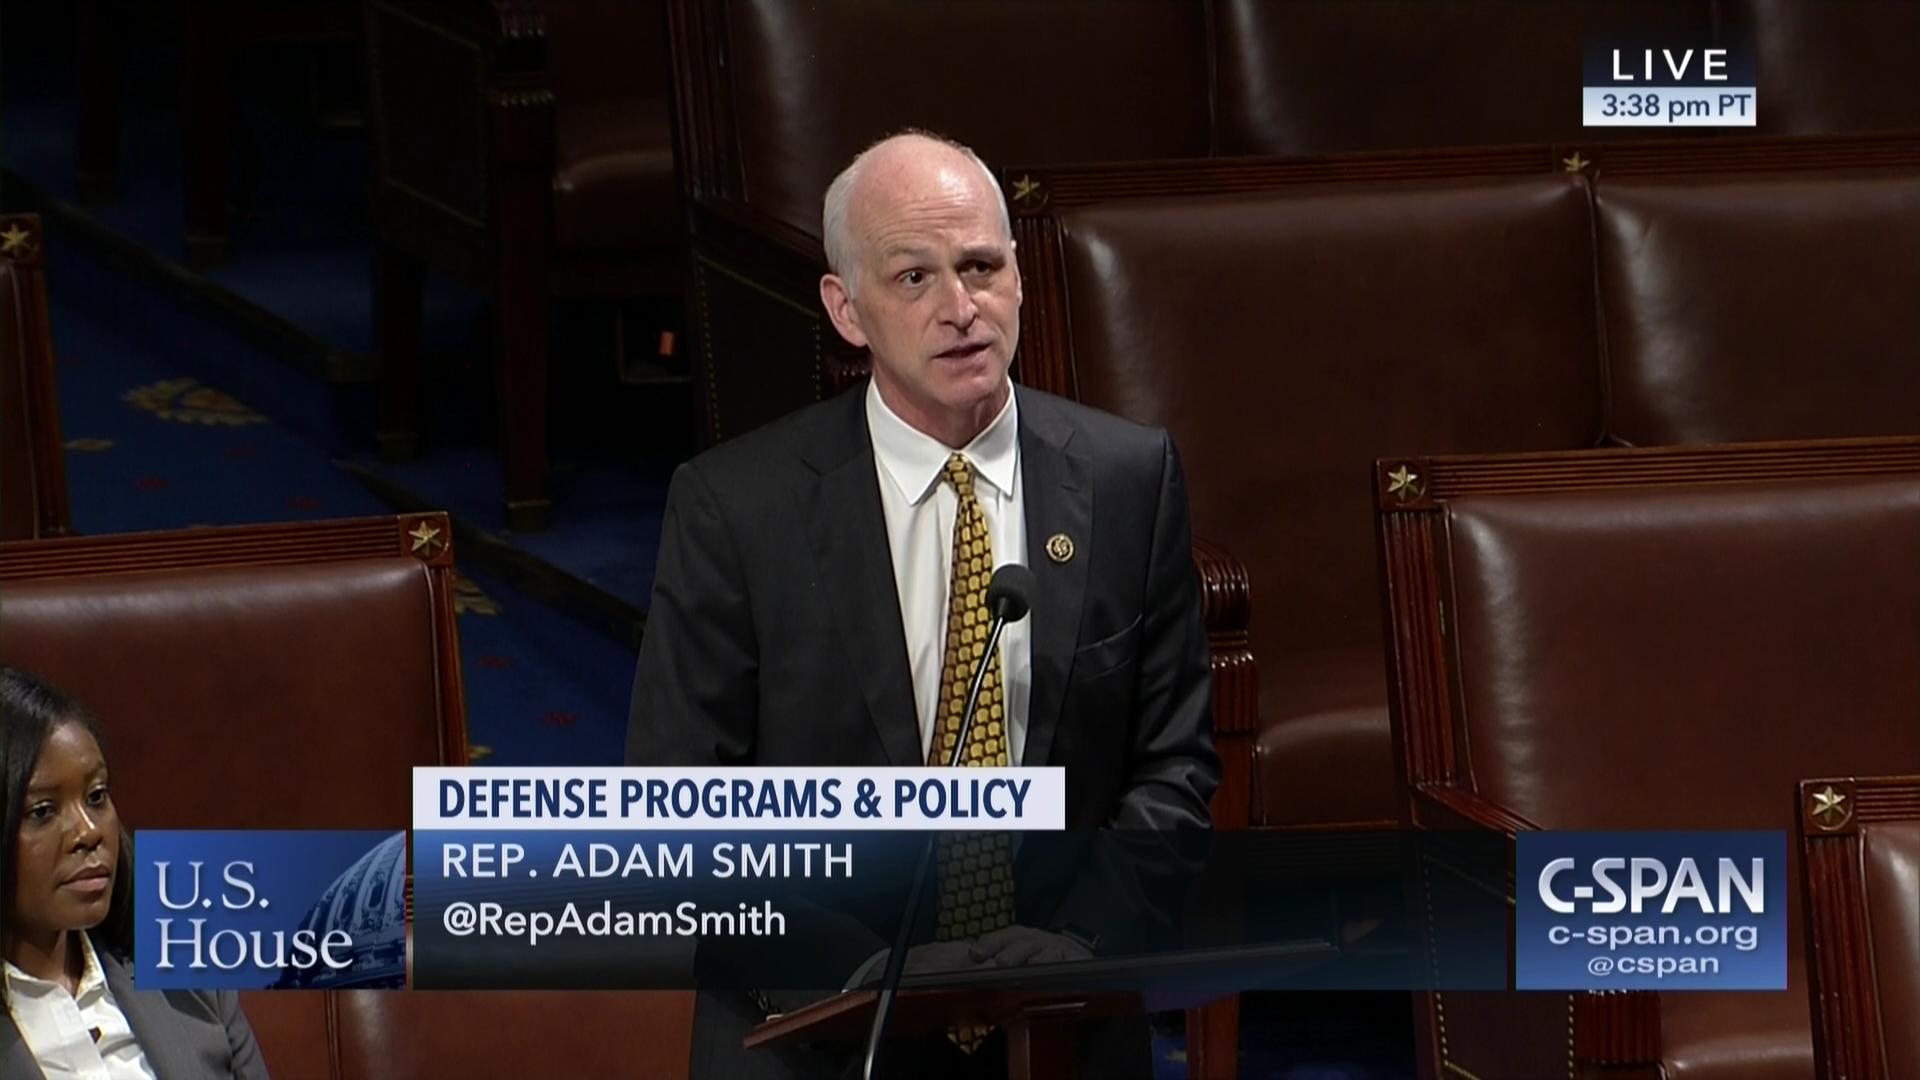 ca70d8624bd Rep. Adam Smith Debates Fiscal Responsibility and the FY19 NDAA | C-SPAN.org